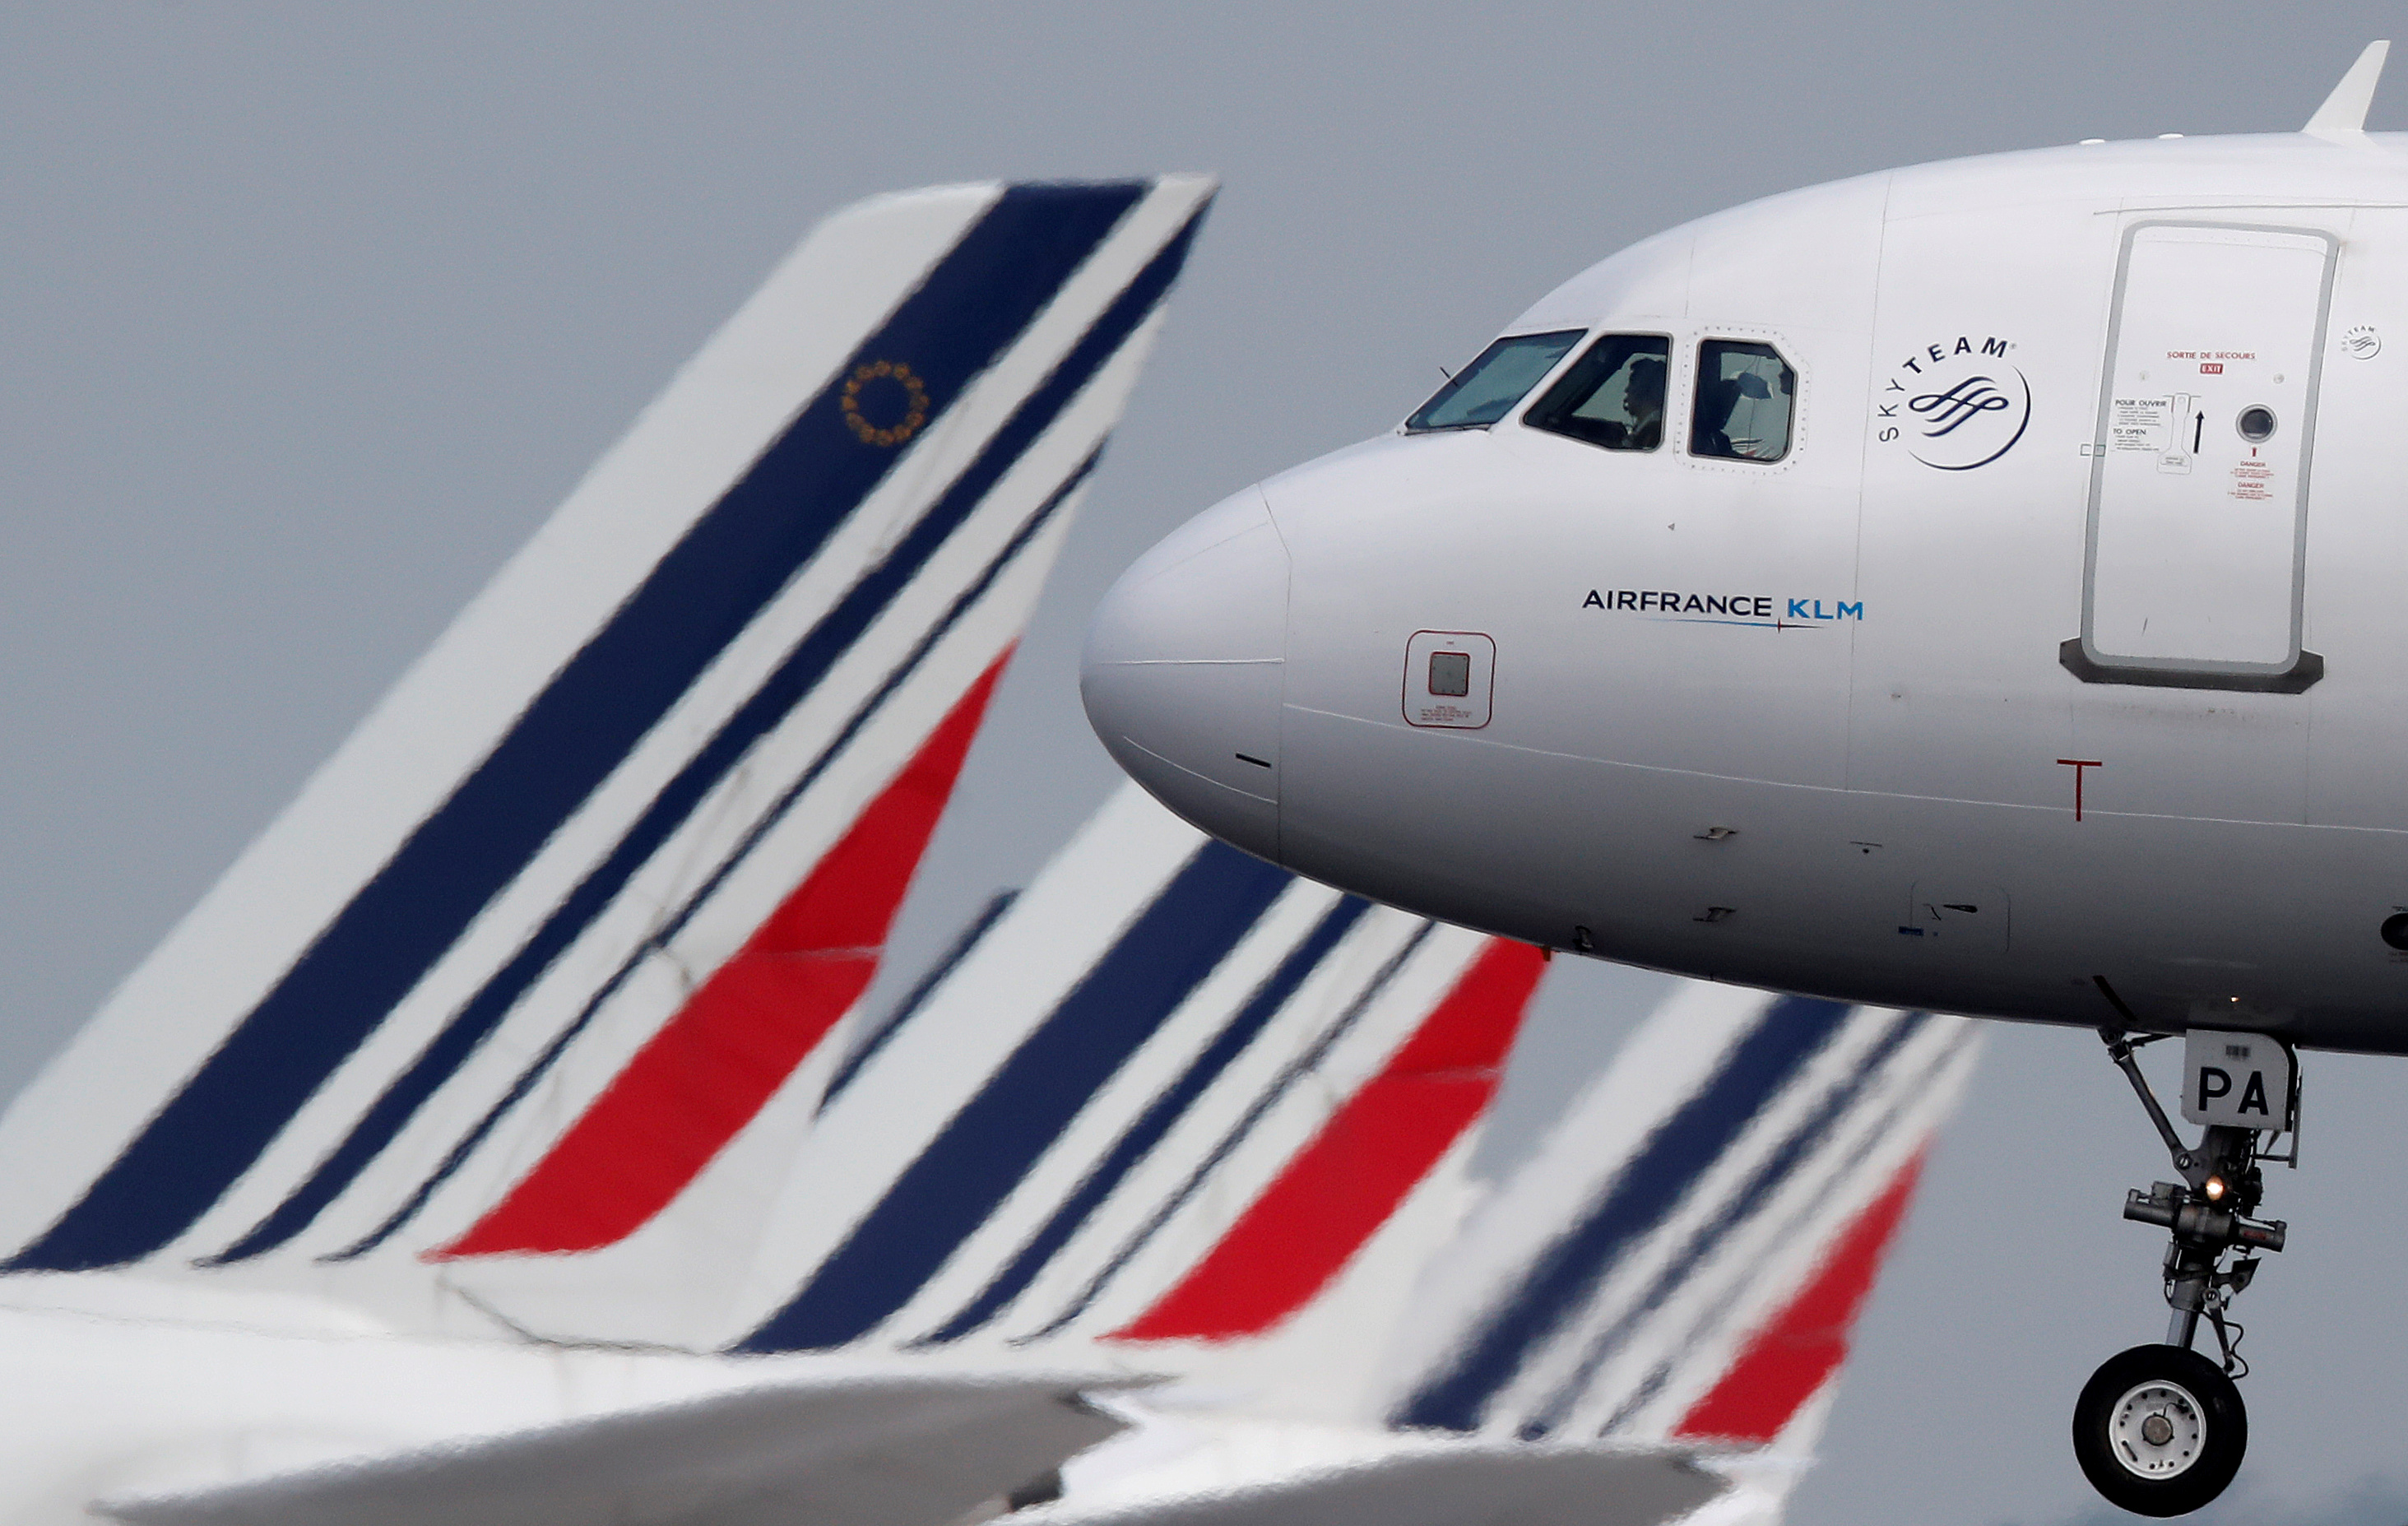 Une acquisition inutile pour Air France KLM